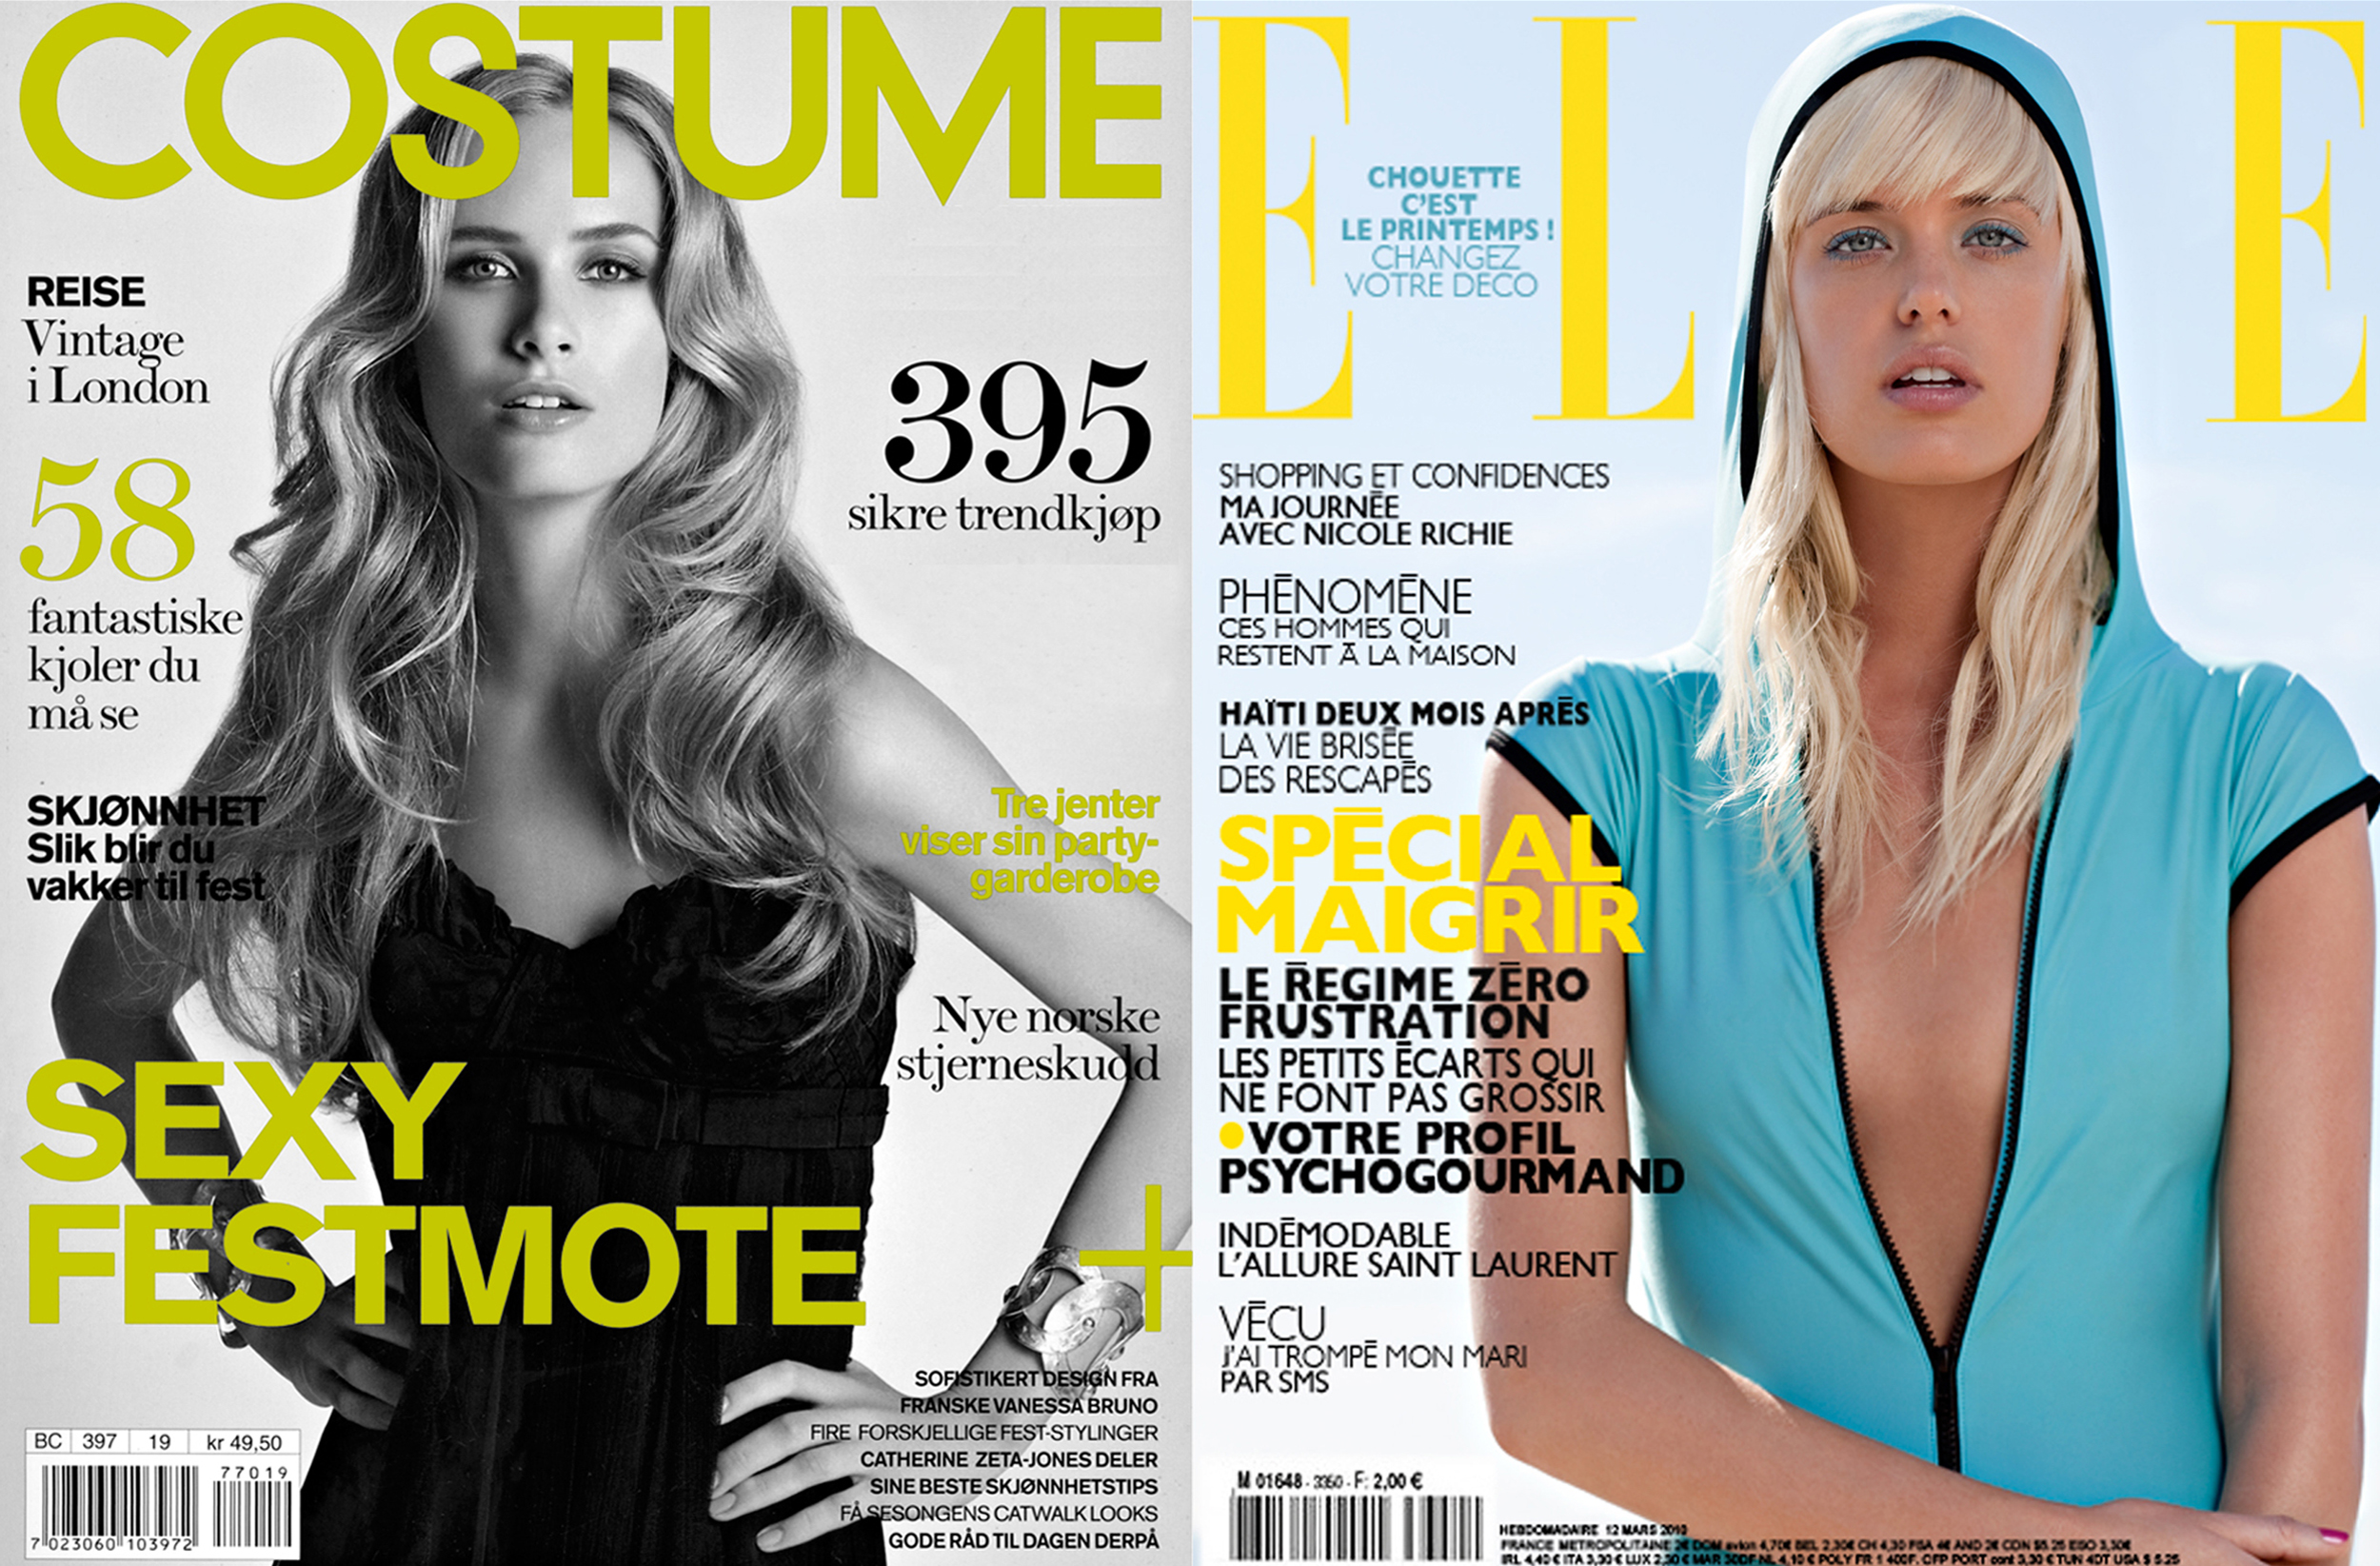 Costume+ELLE+covers_V2.jpg